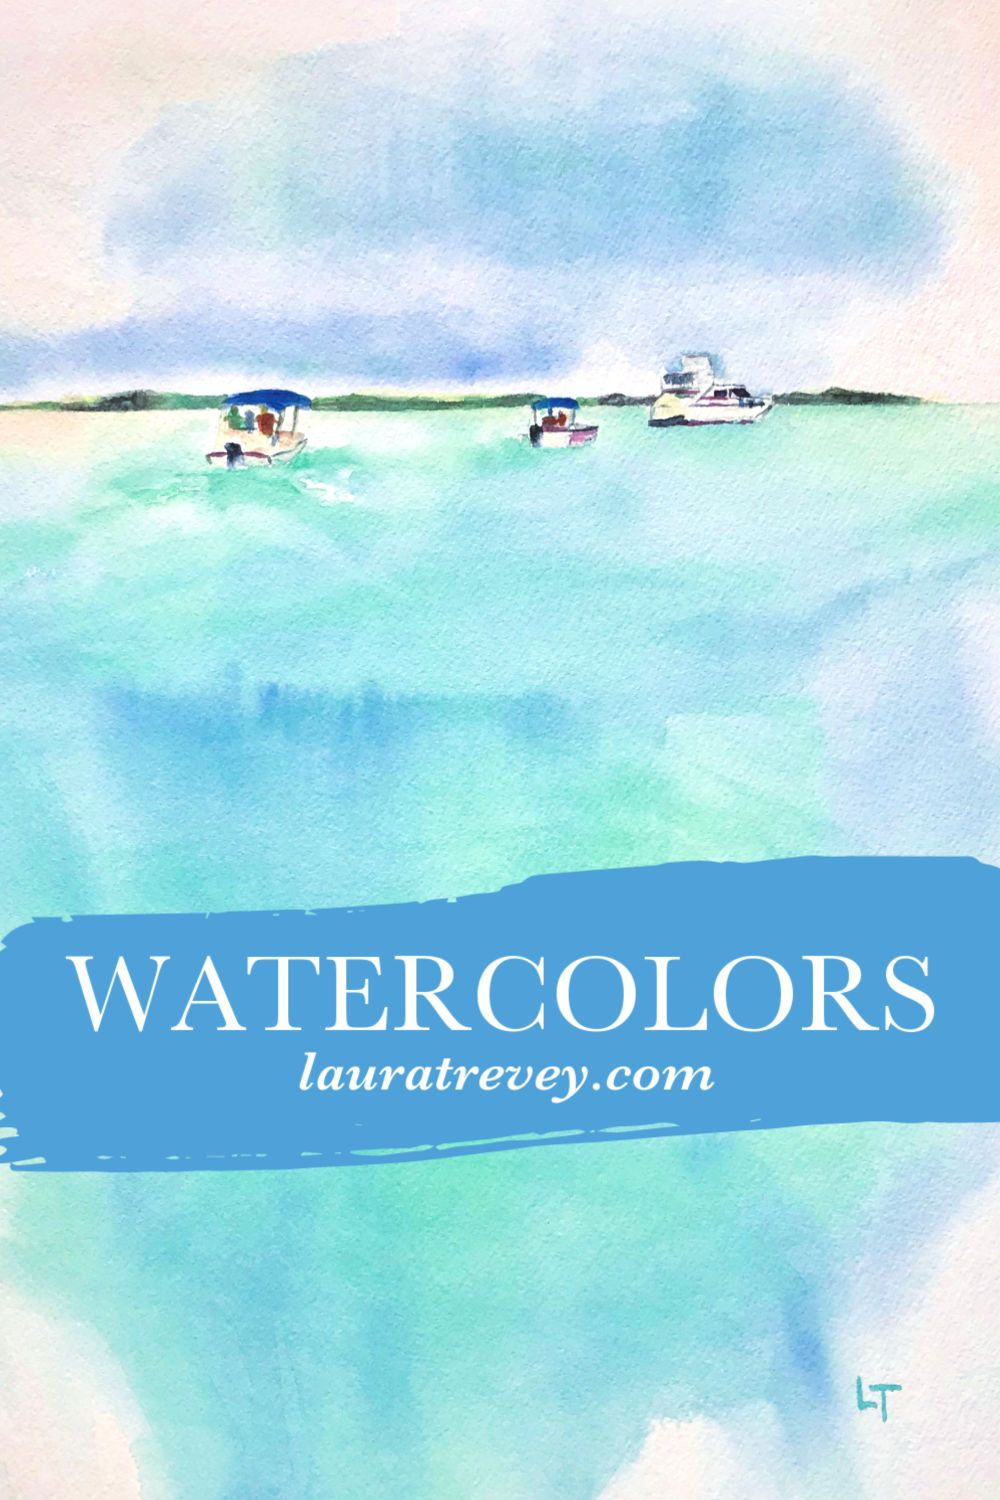 Exuma Watercolor Series For Sale Watercolor Projects Watercolor